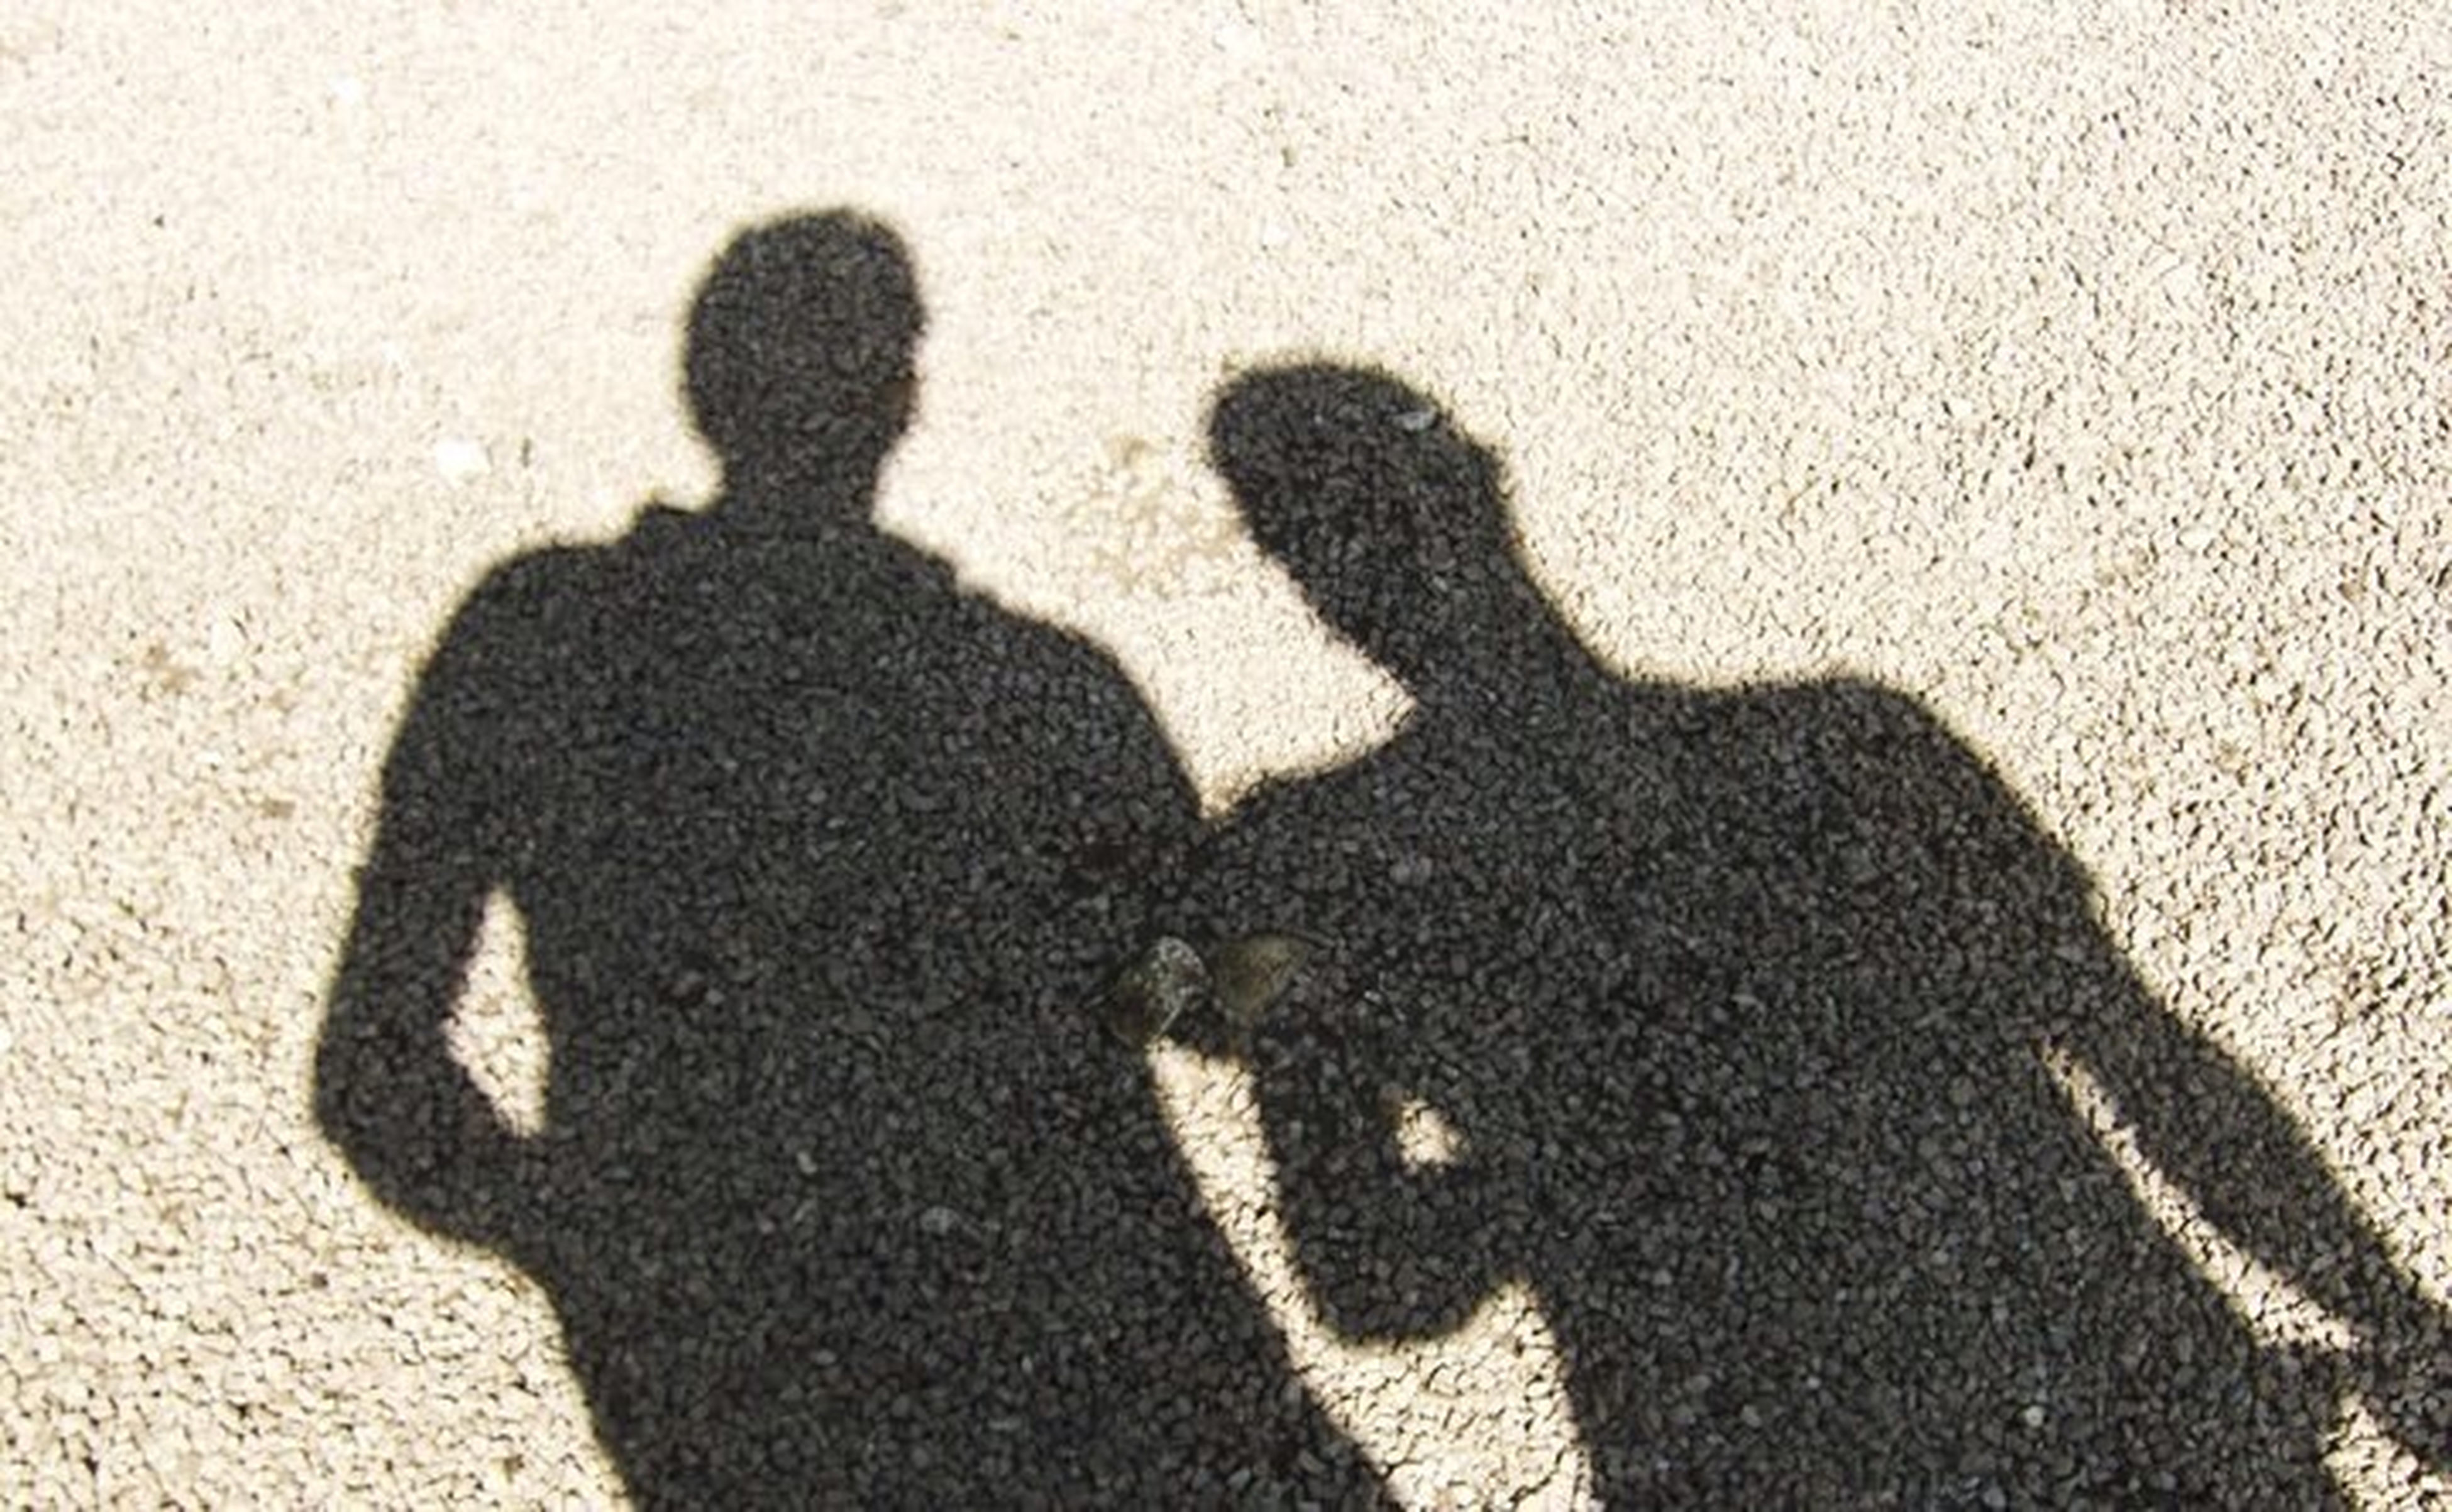 shadow, focus on shadow, high angle view, sunlight, lifestyles, togetherness, leisure activity, men, bonding, sand, love, outdoors, day, unrecognizable person, outline, silhouette, sunny